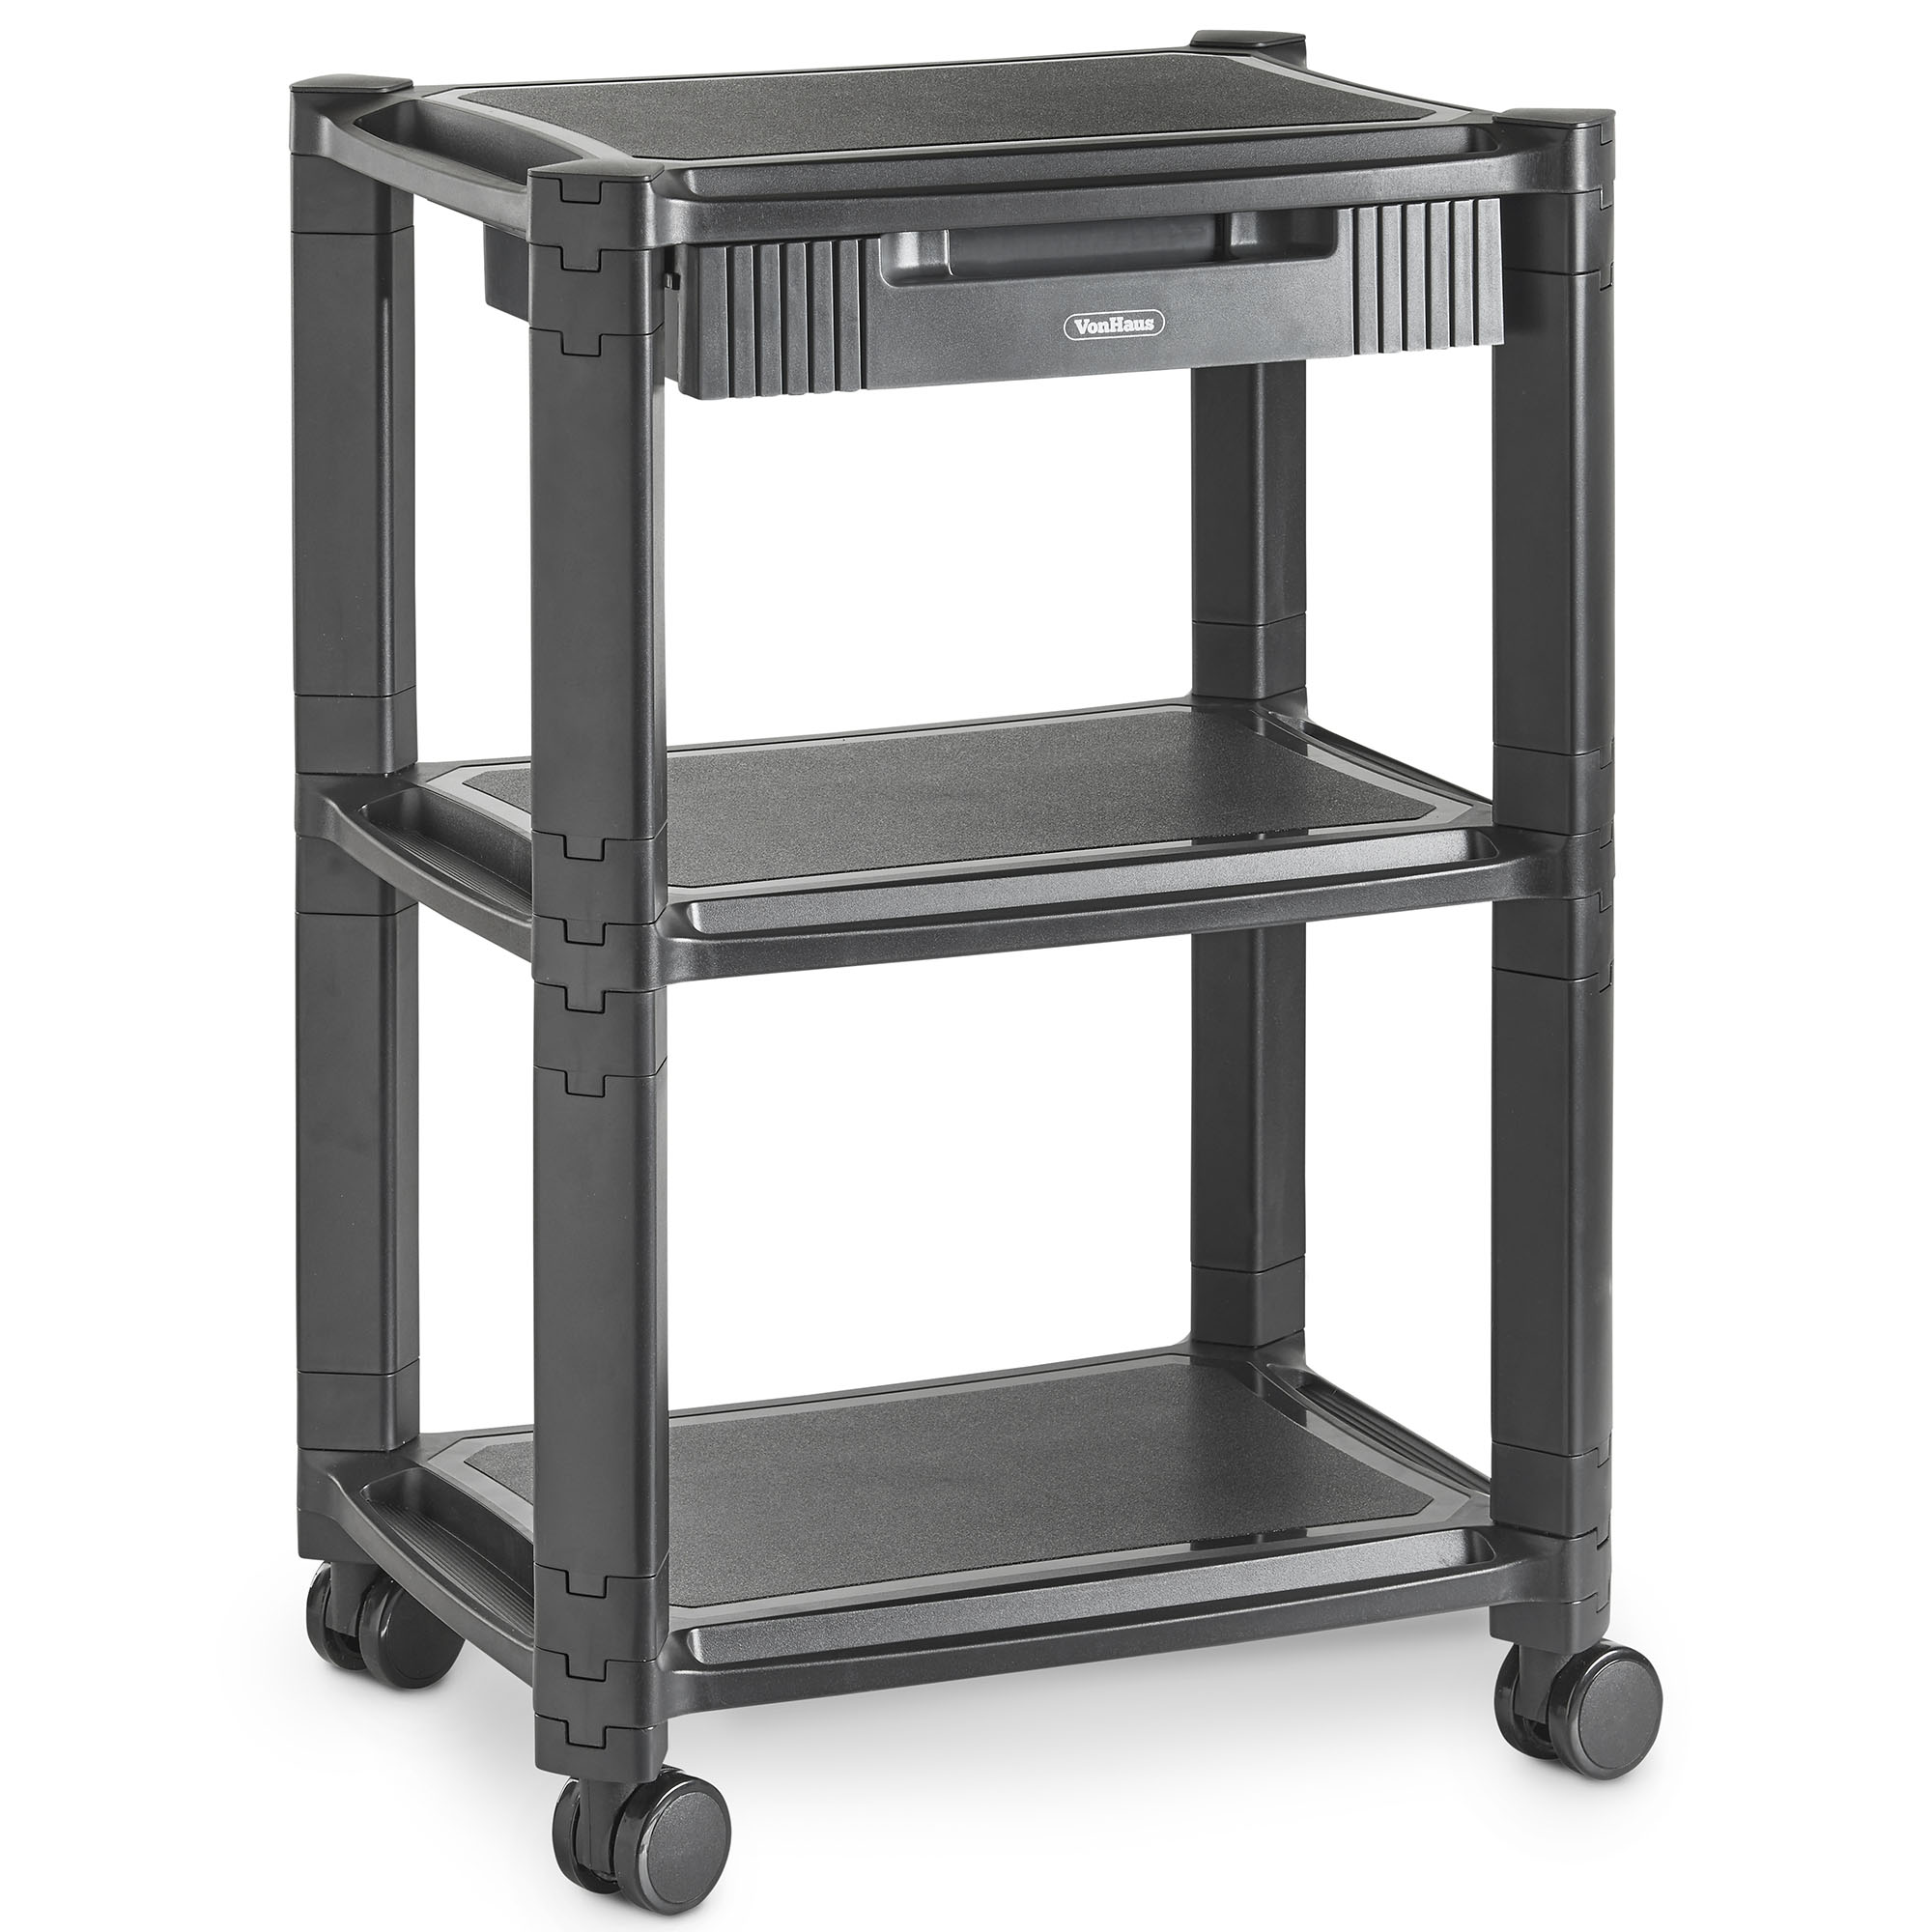 VonHaus Storage Stand with Three Shelves Self contained Unit with